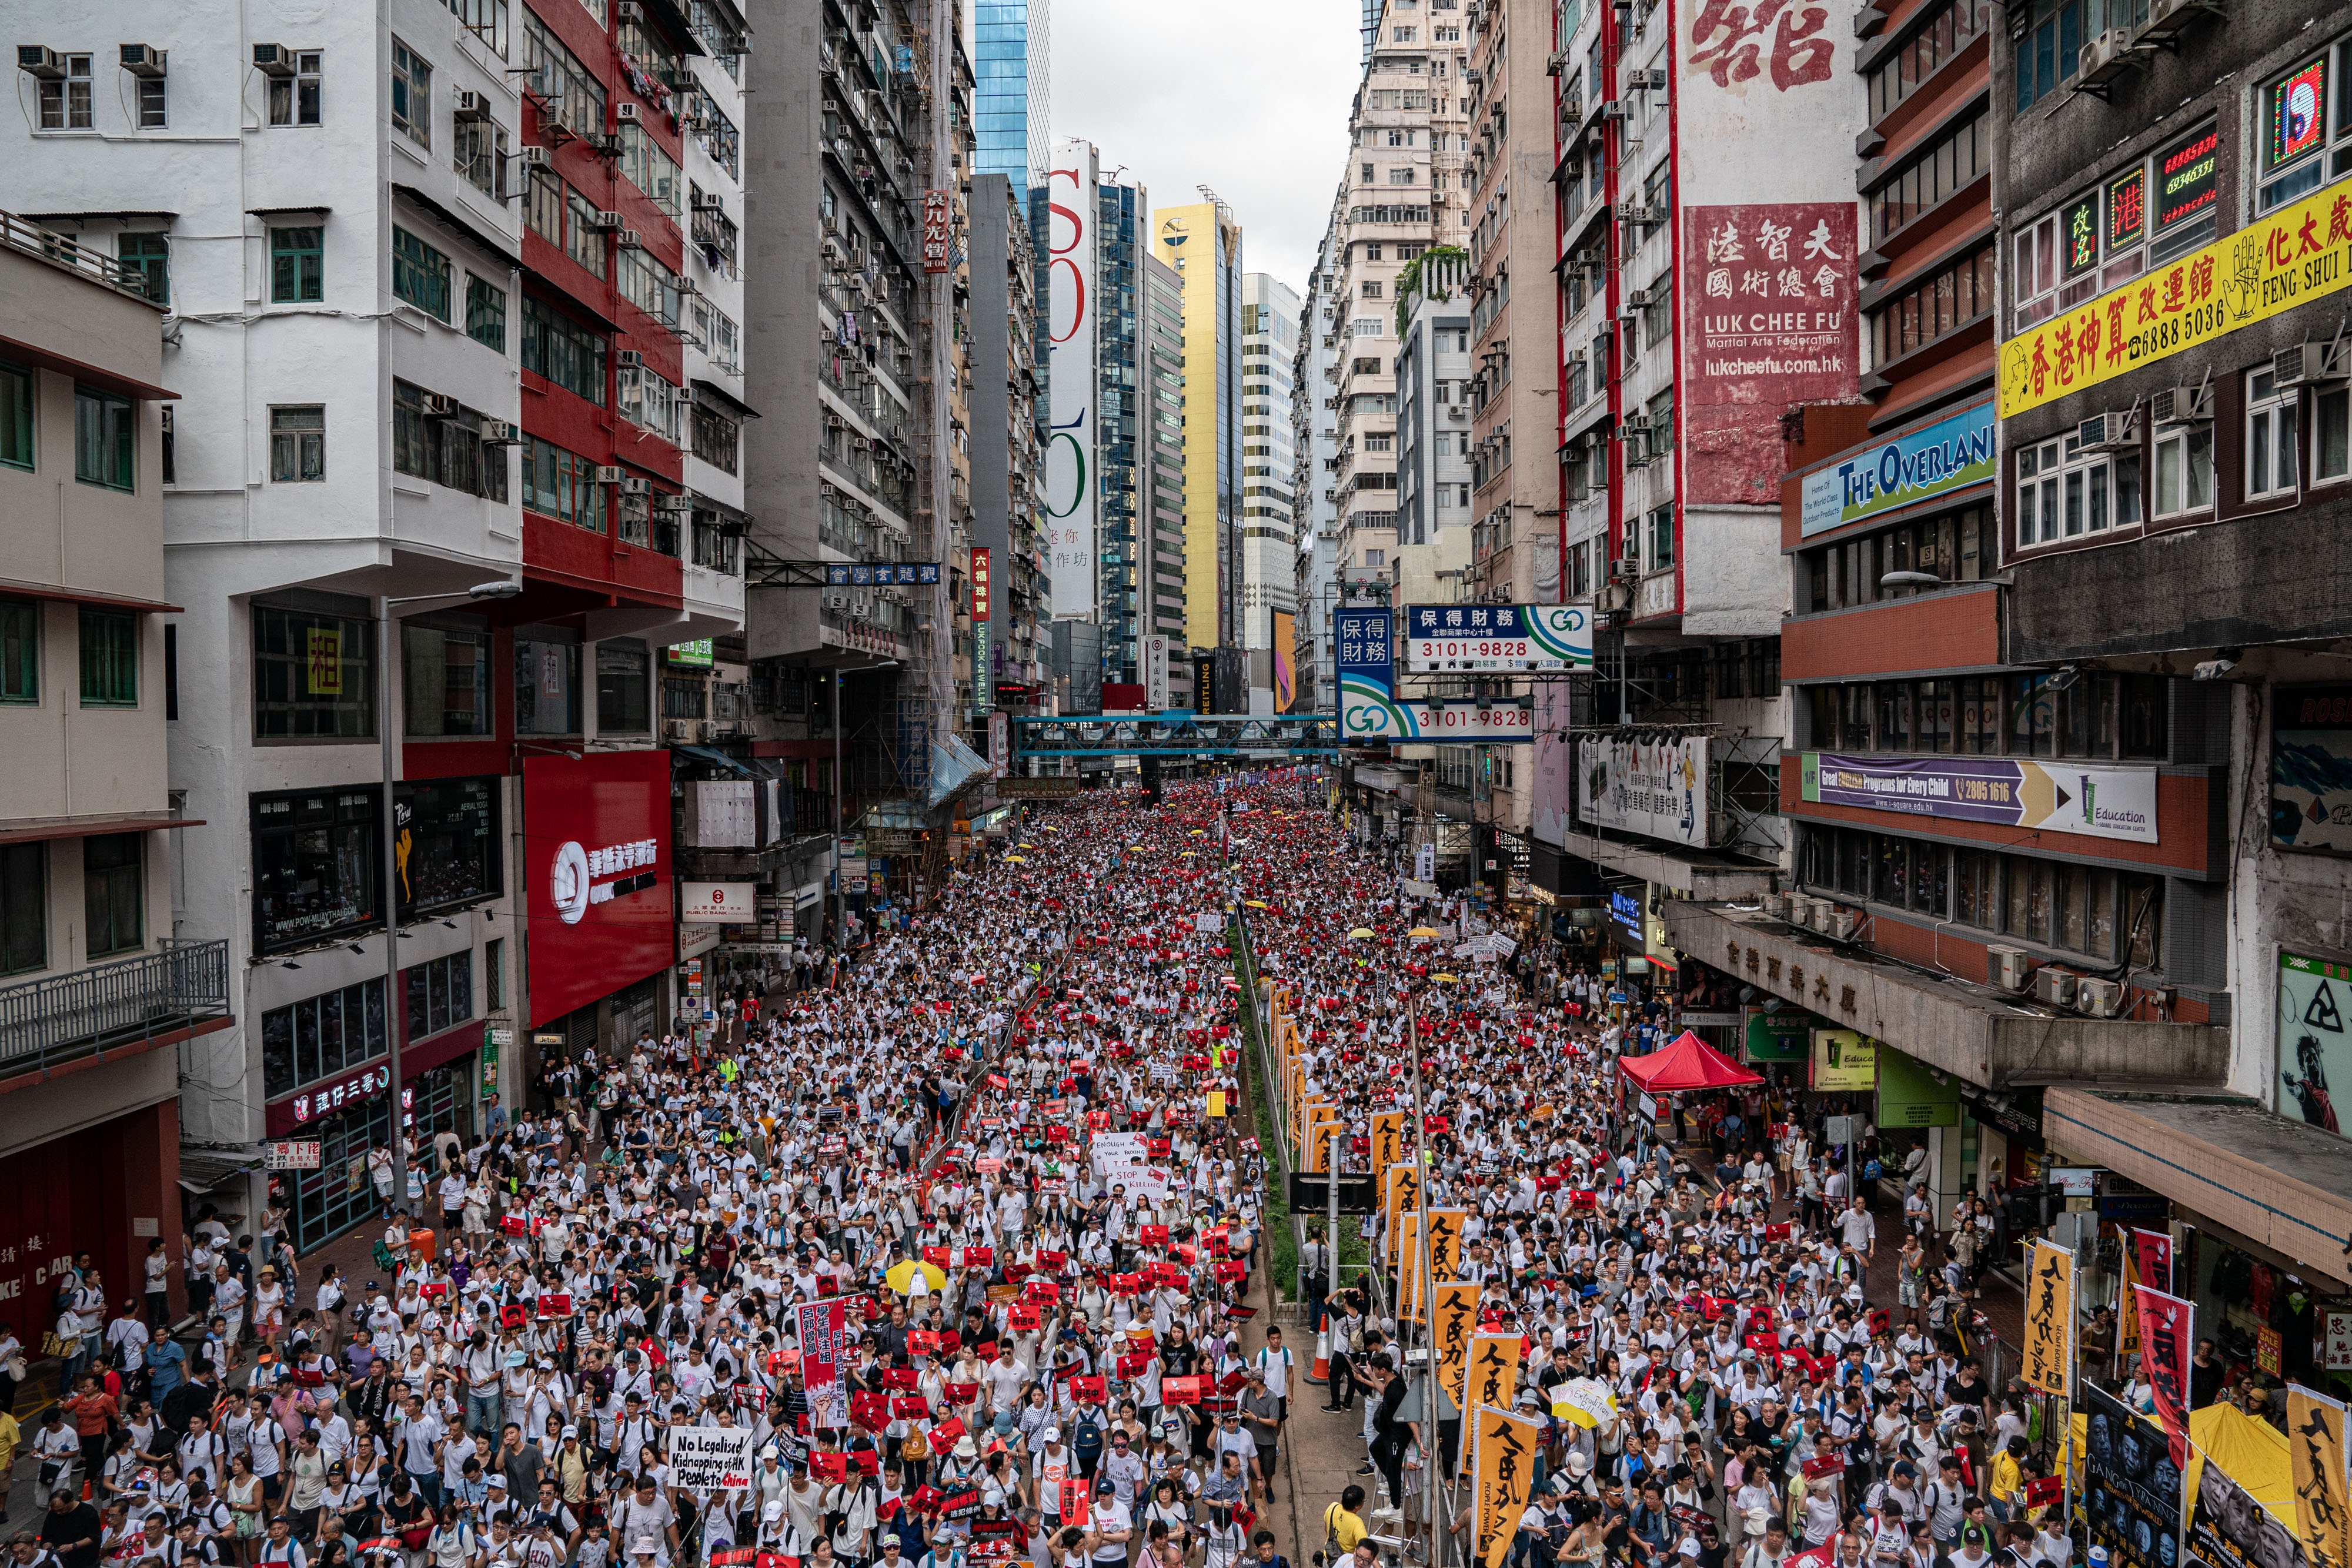 Hong Kong march: hundreds of thousands protest extradition